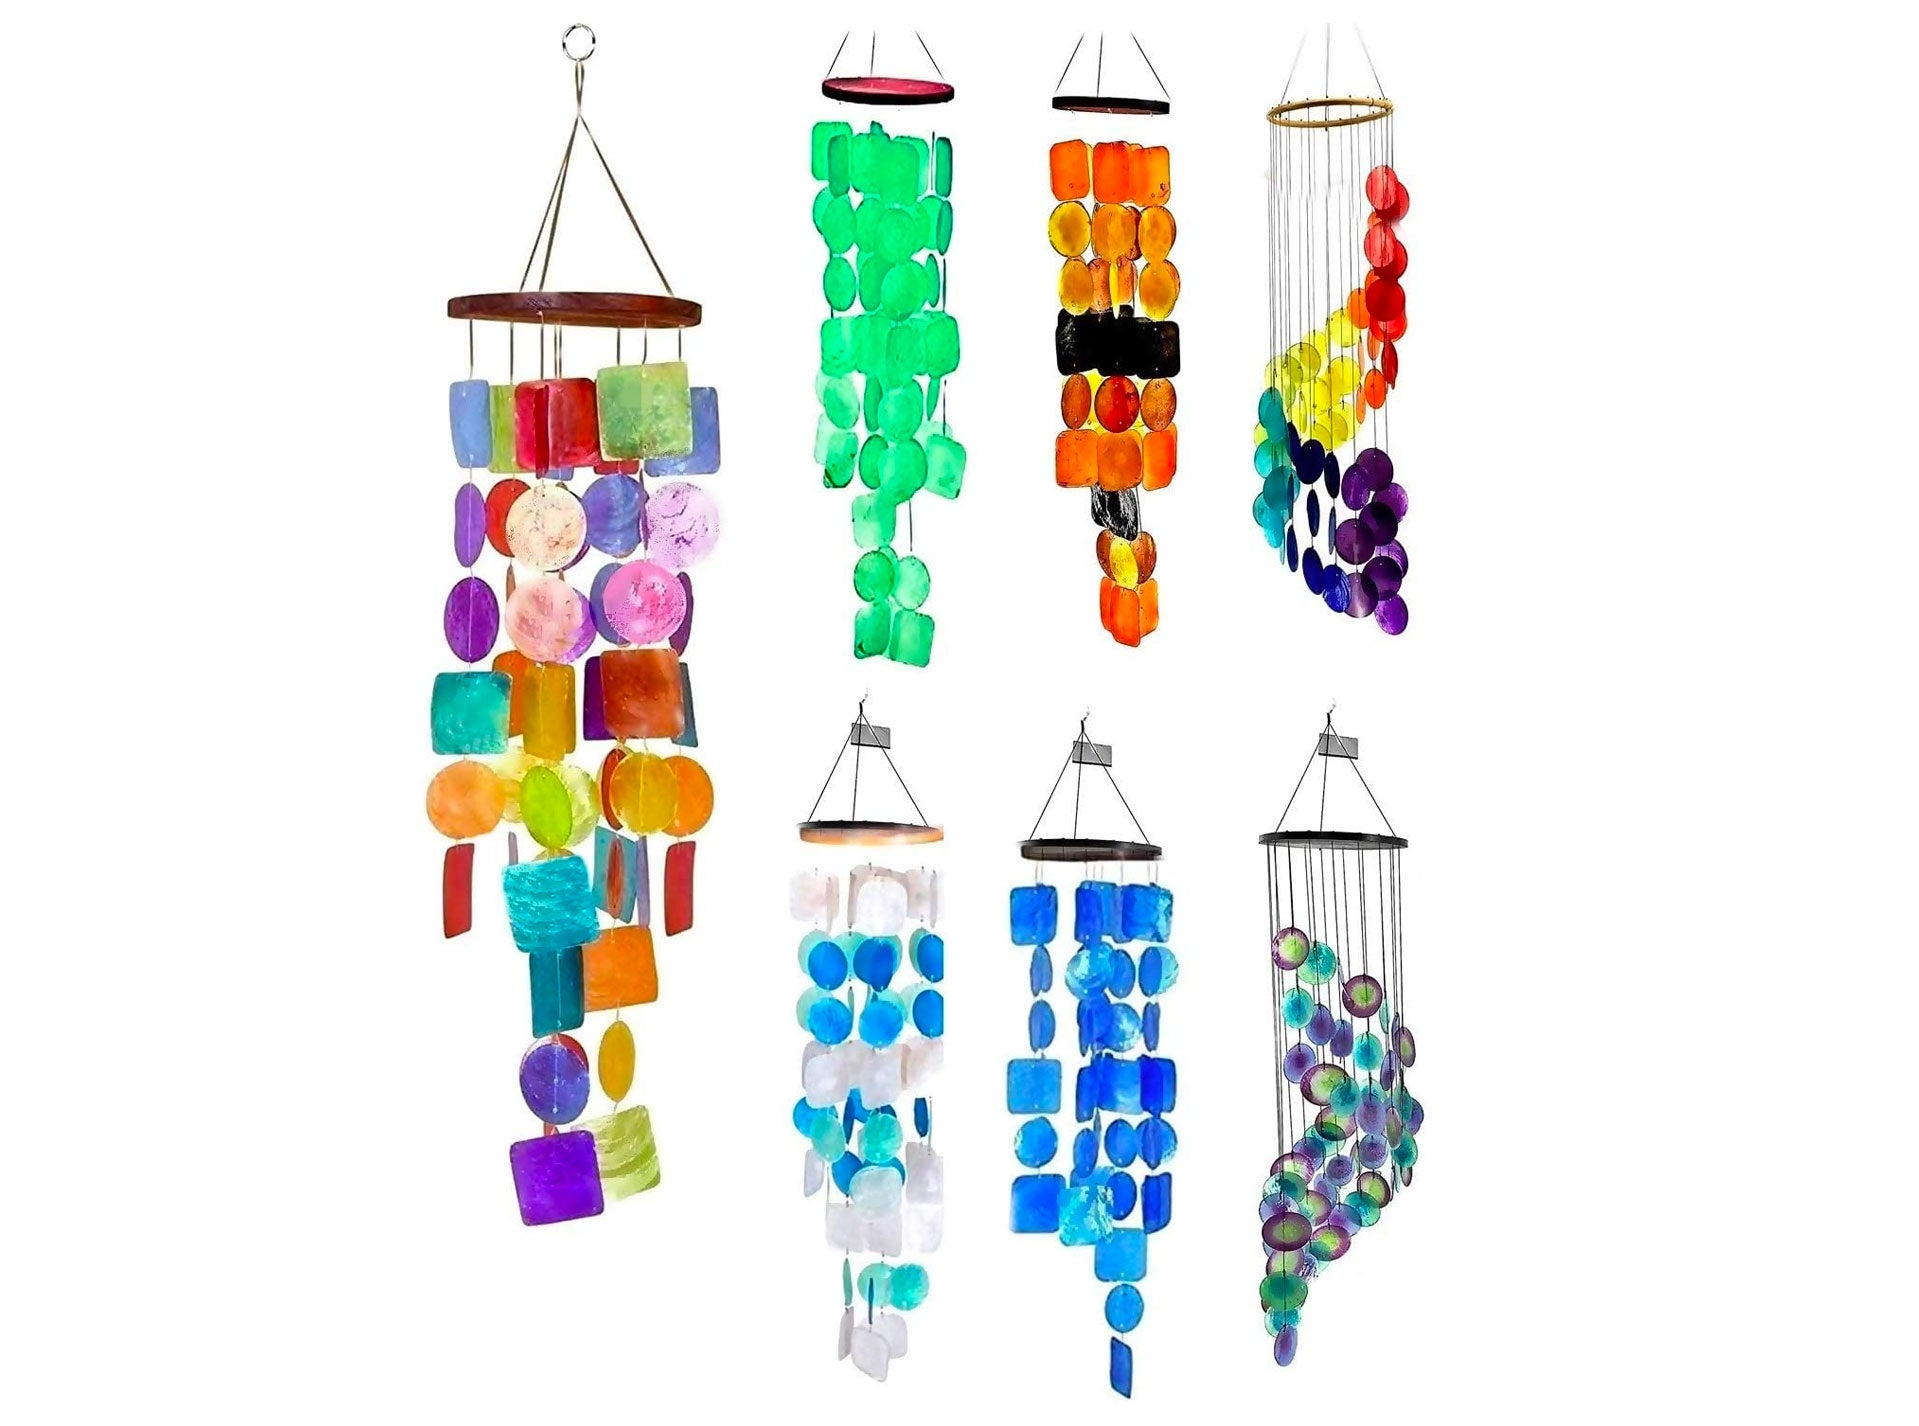 Bellaa Rainbow Wind Chimes Patio Lawn Garden Unique Wind Chimes Hanging Capiz Memorial Grace Handmade Chimes 27 inch Presents for Mom Gifts for Grandma